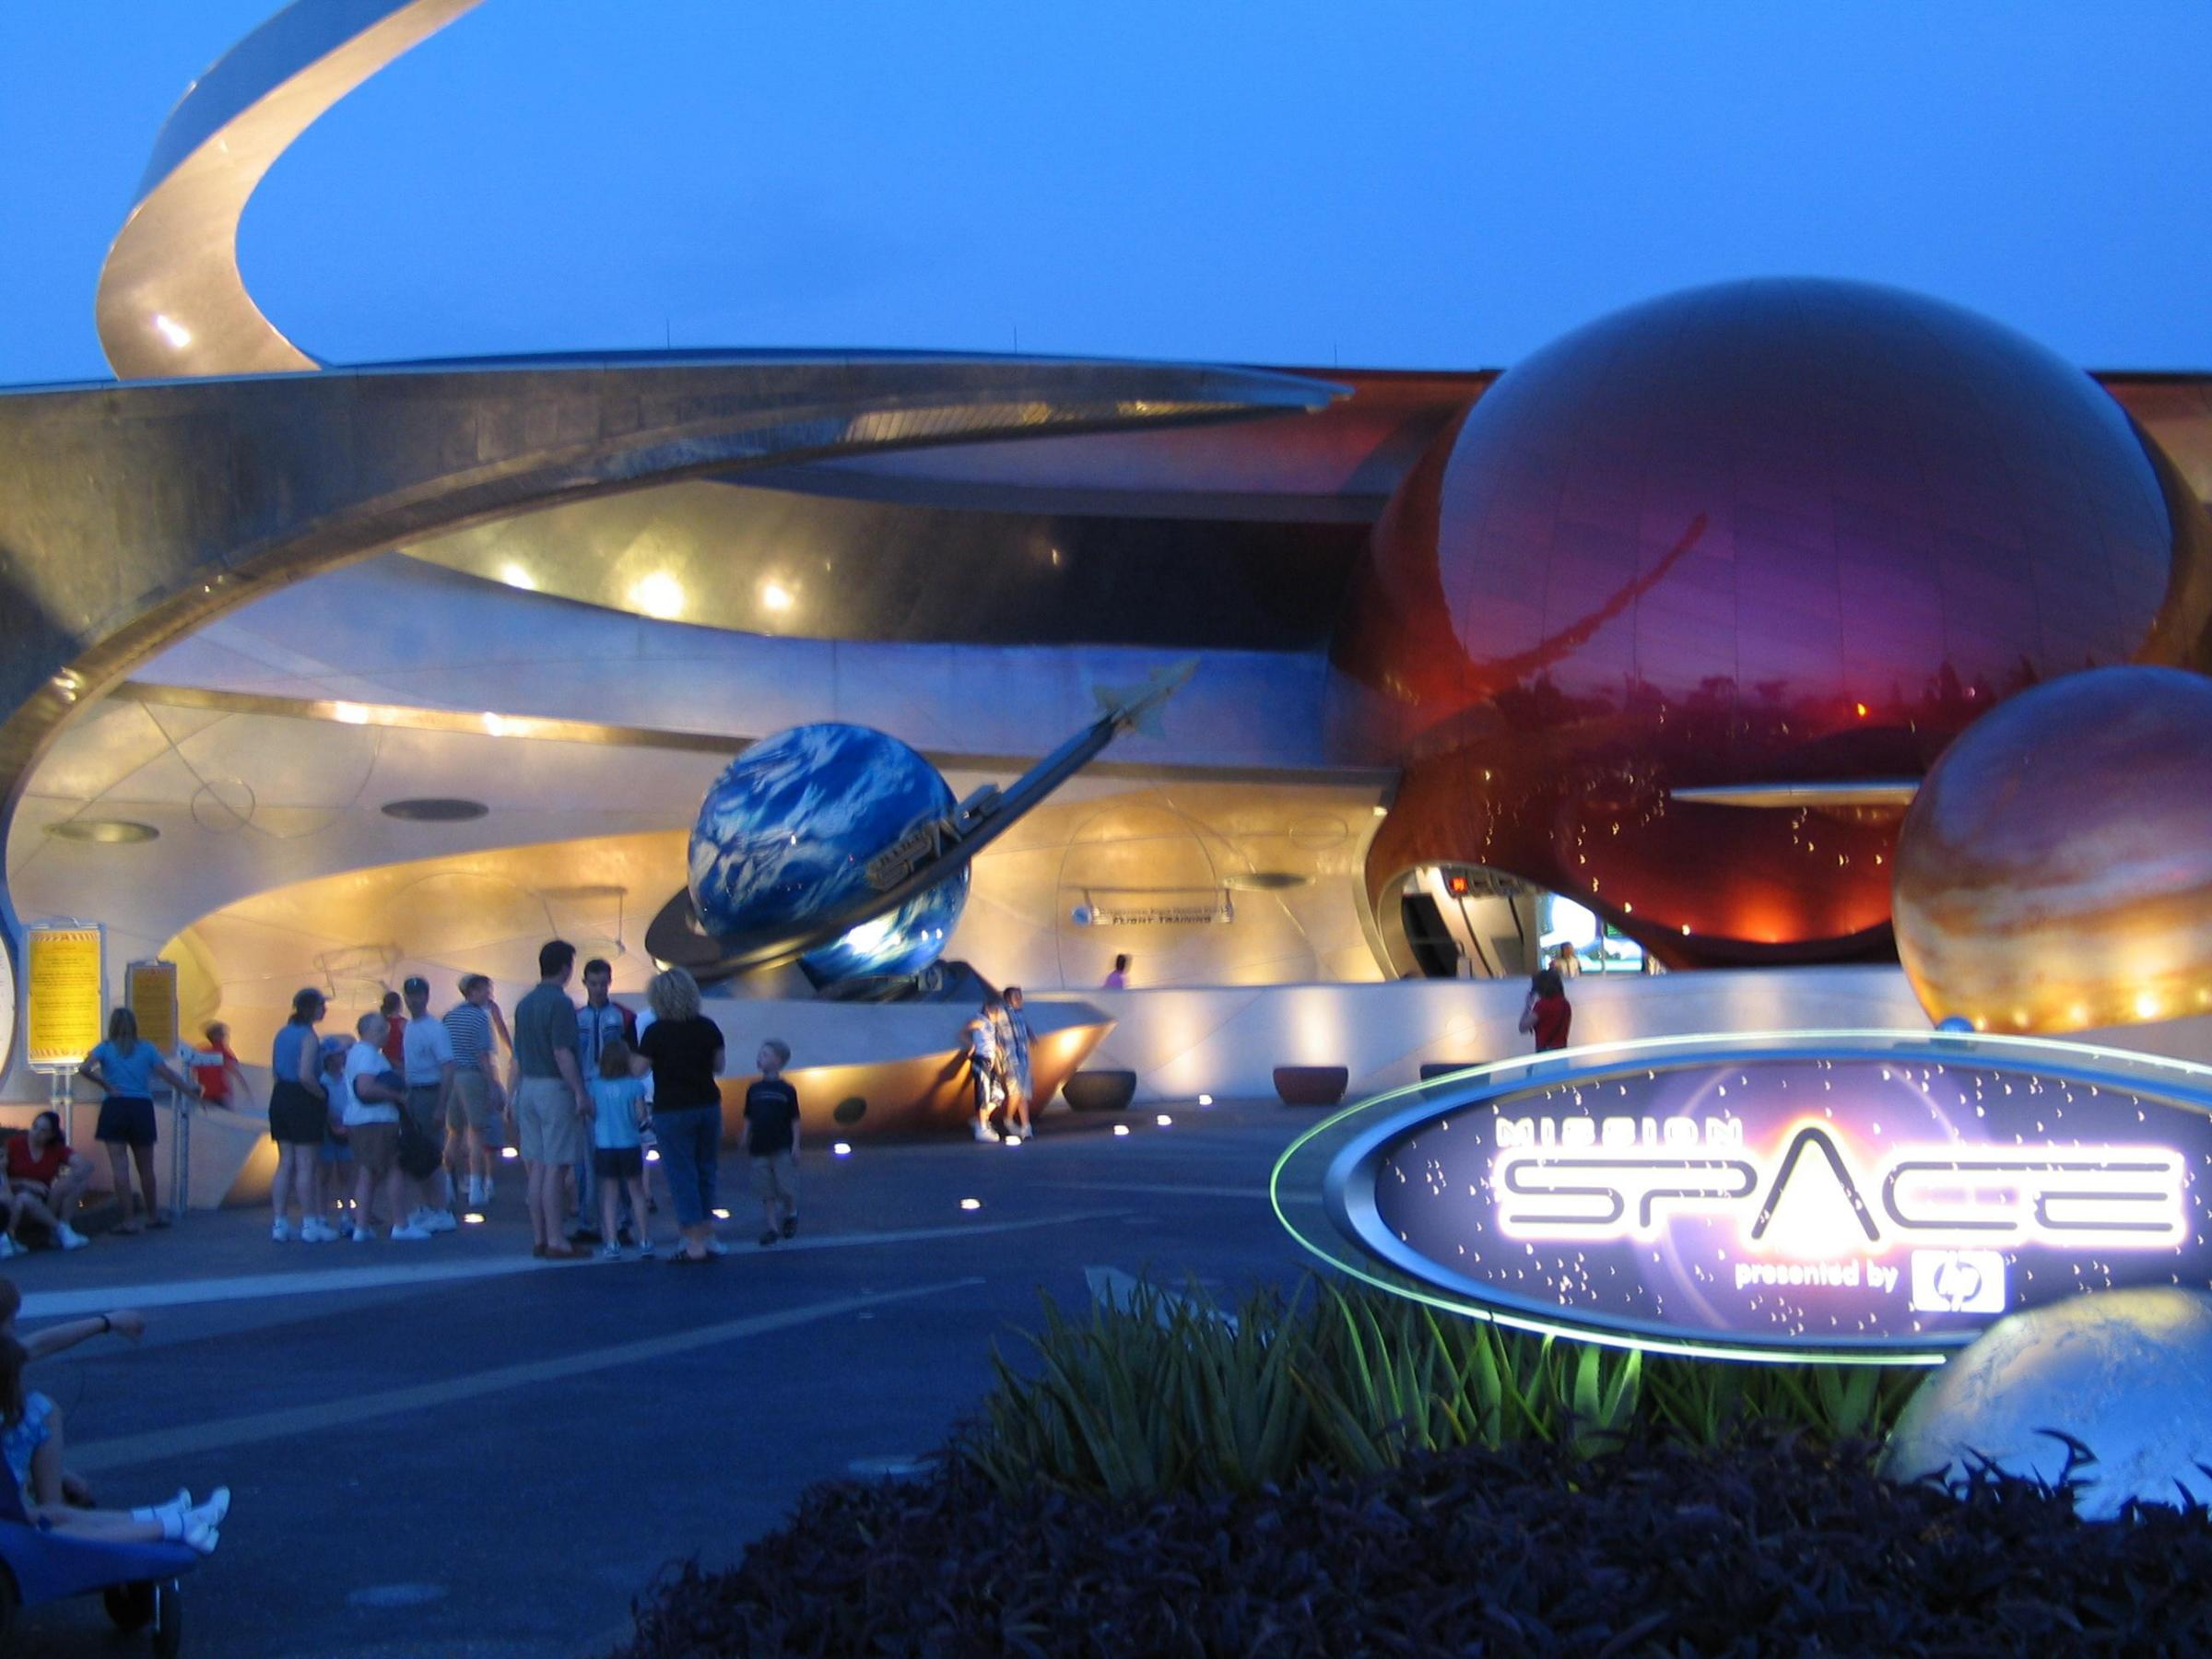 Mission-space-epcot-now-considered-as-a-Permanent-World's-Fair